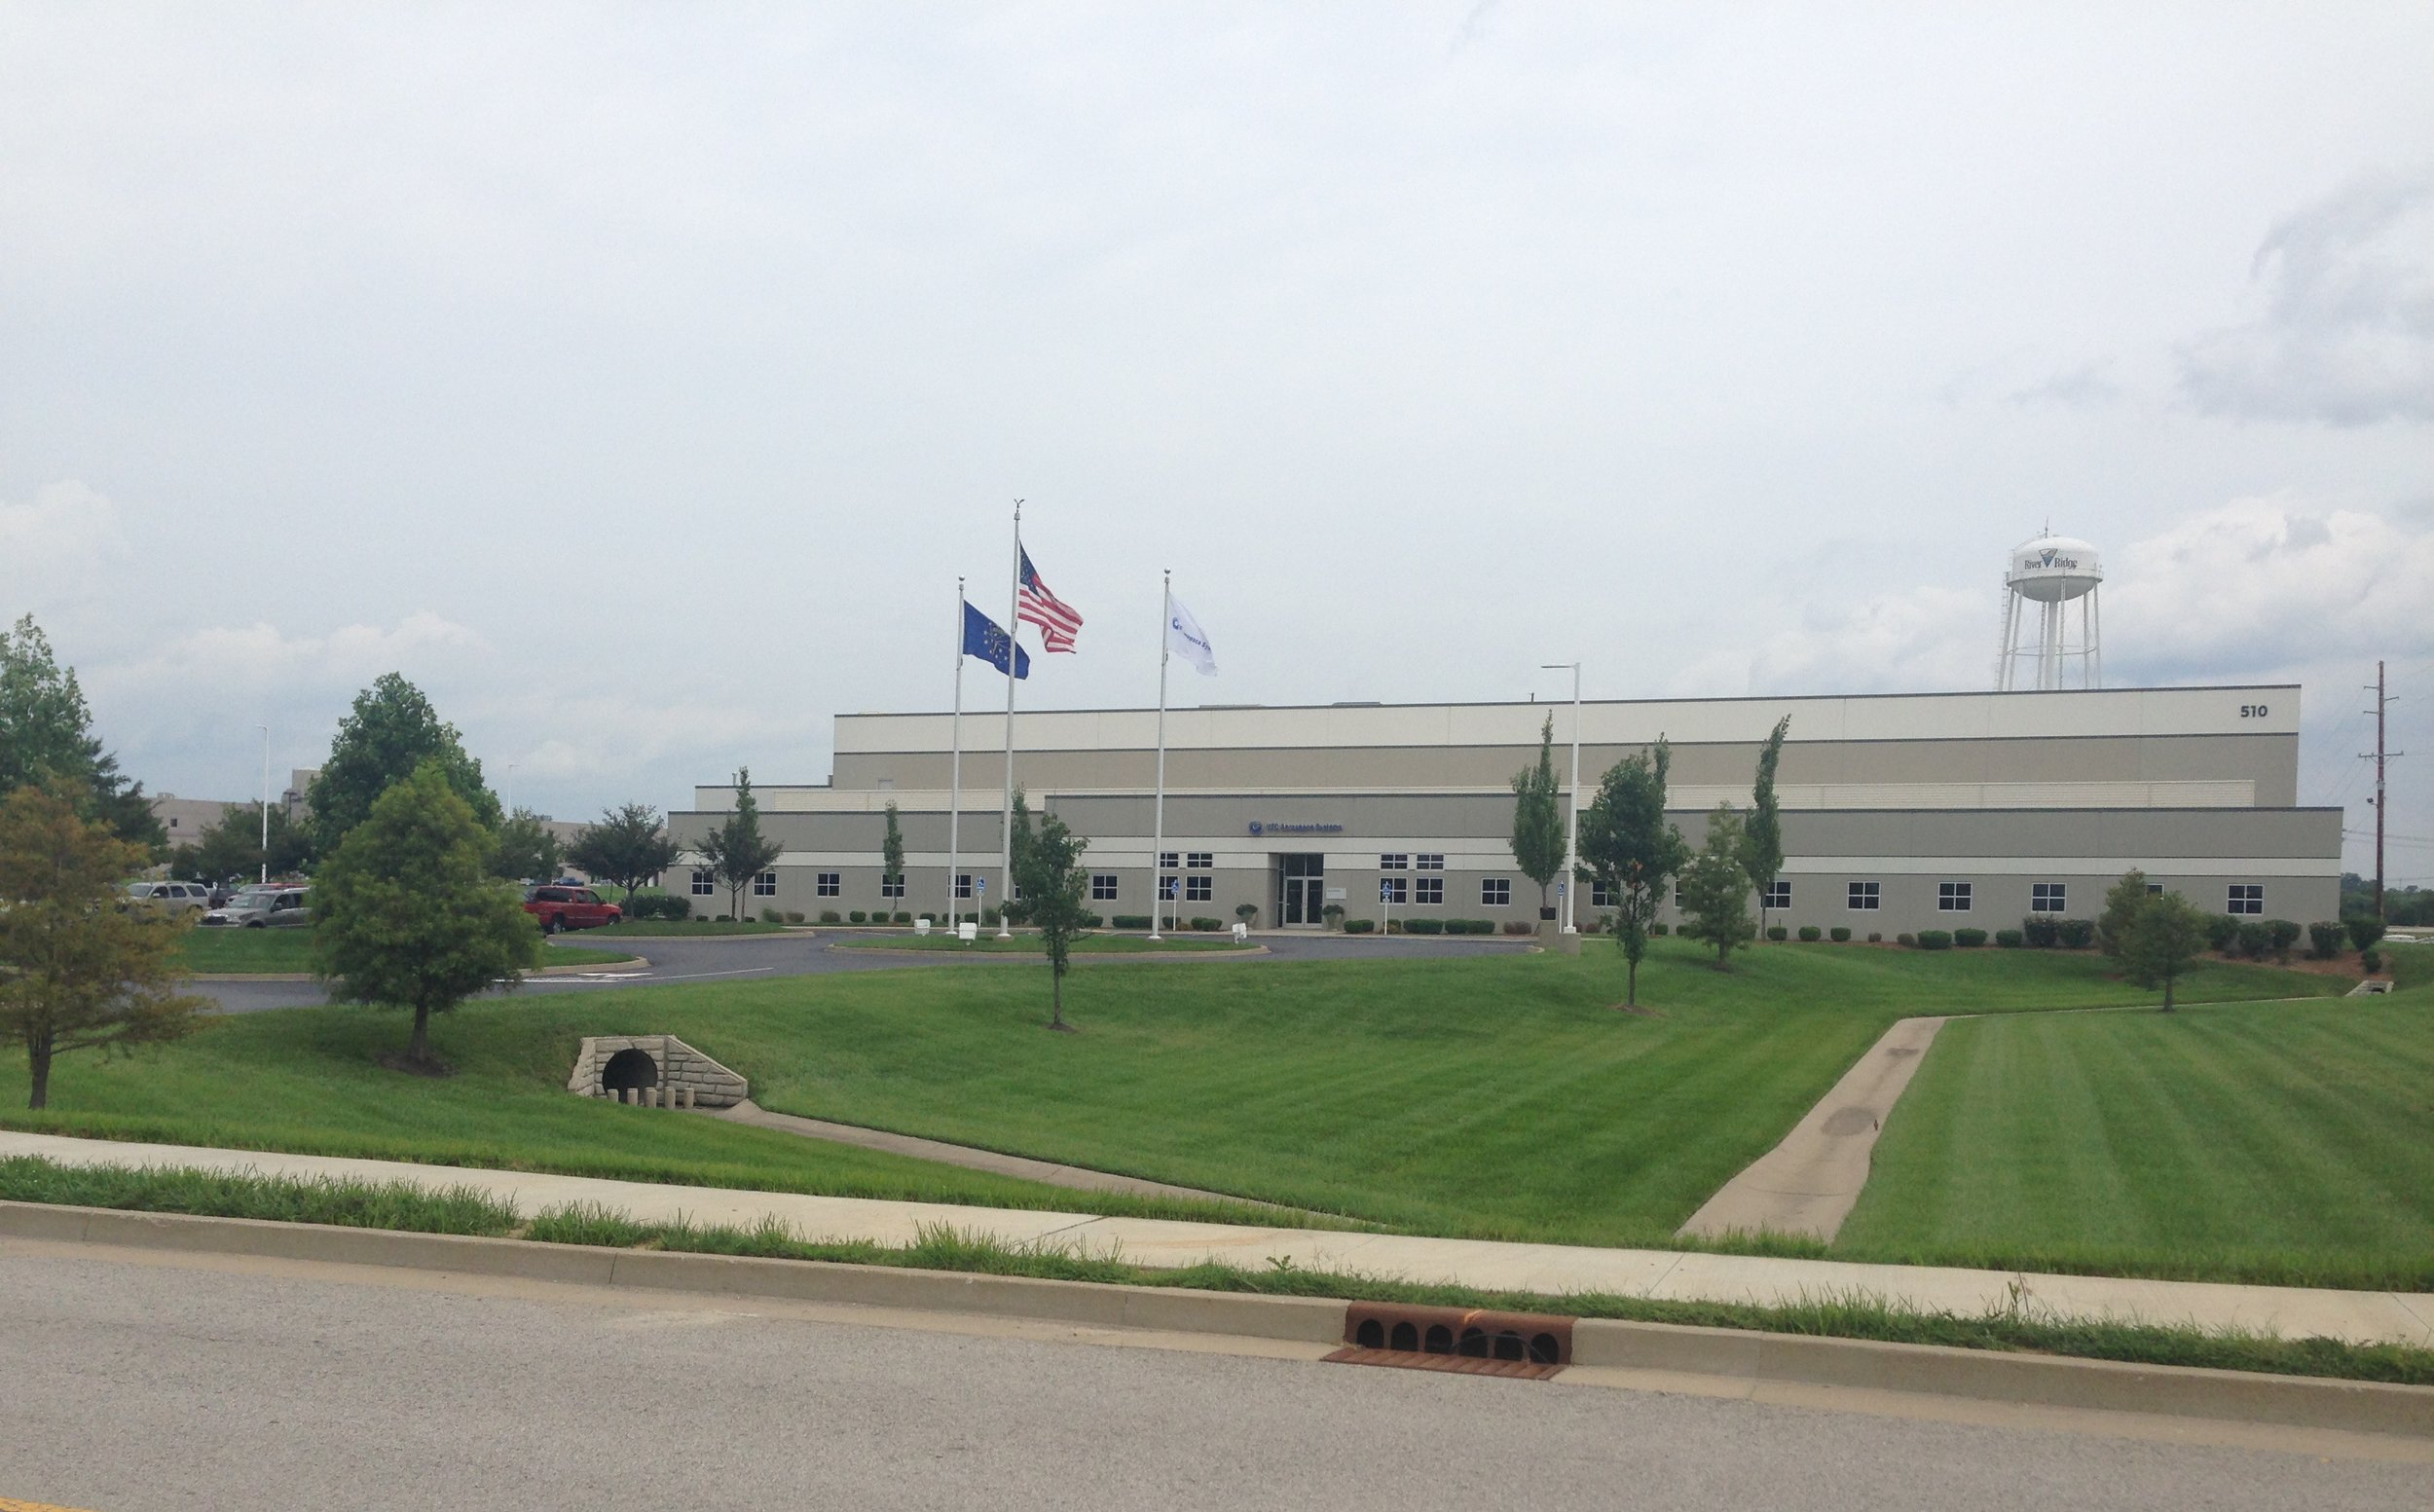 DECRANE AEROSPACE – RIVER RIDGE COMMERCE CENTER